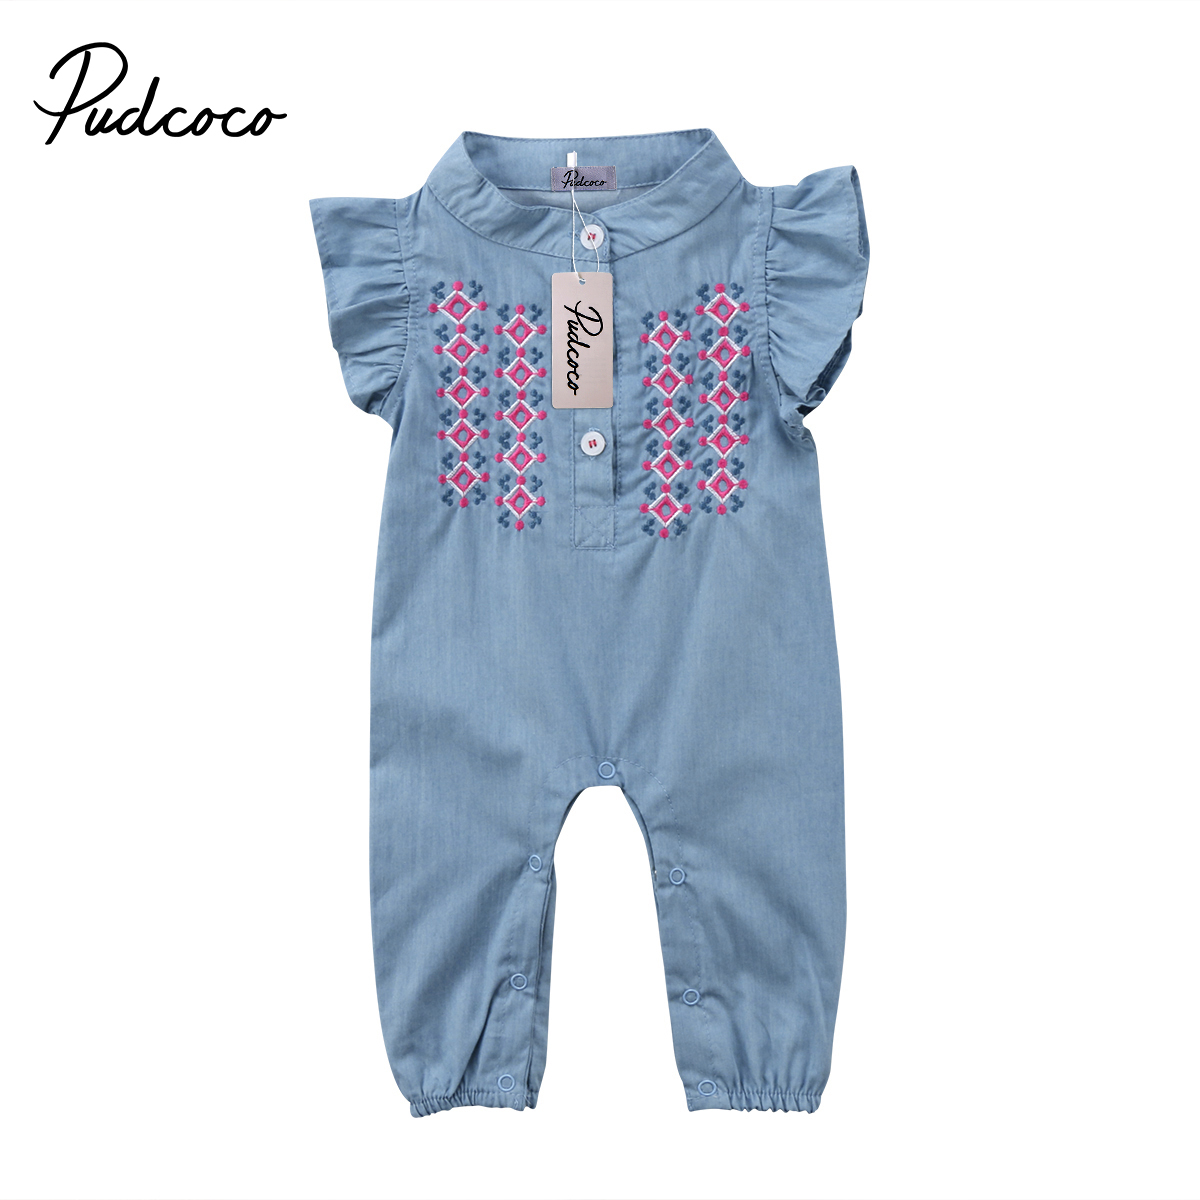 2018 New Cute baby girls denim romper Infant Newborn Baby Girl embroidery Playsuit Jumpsuit Body suit summer baby girl Clothing цена